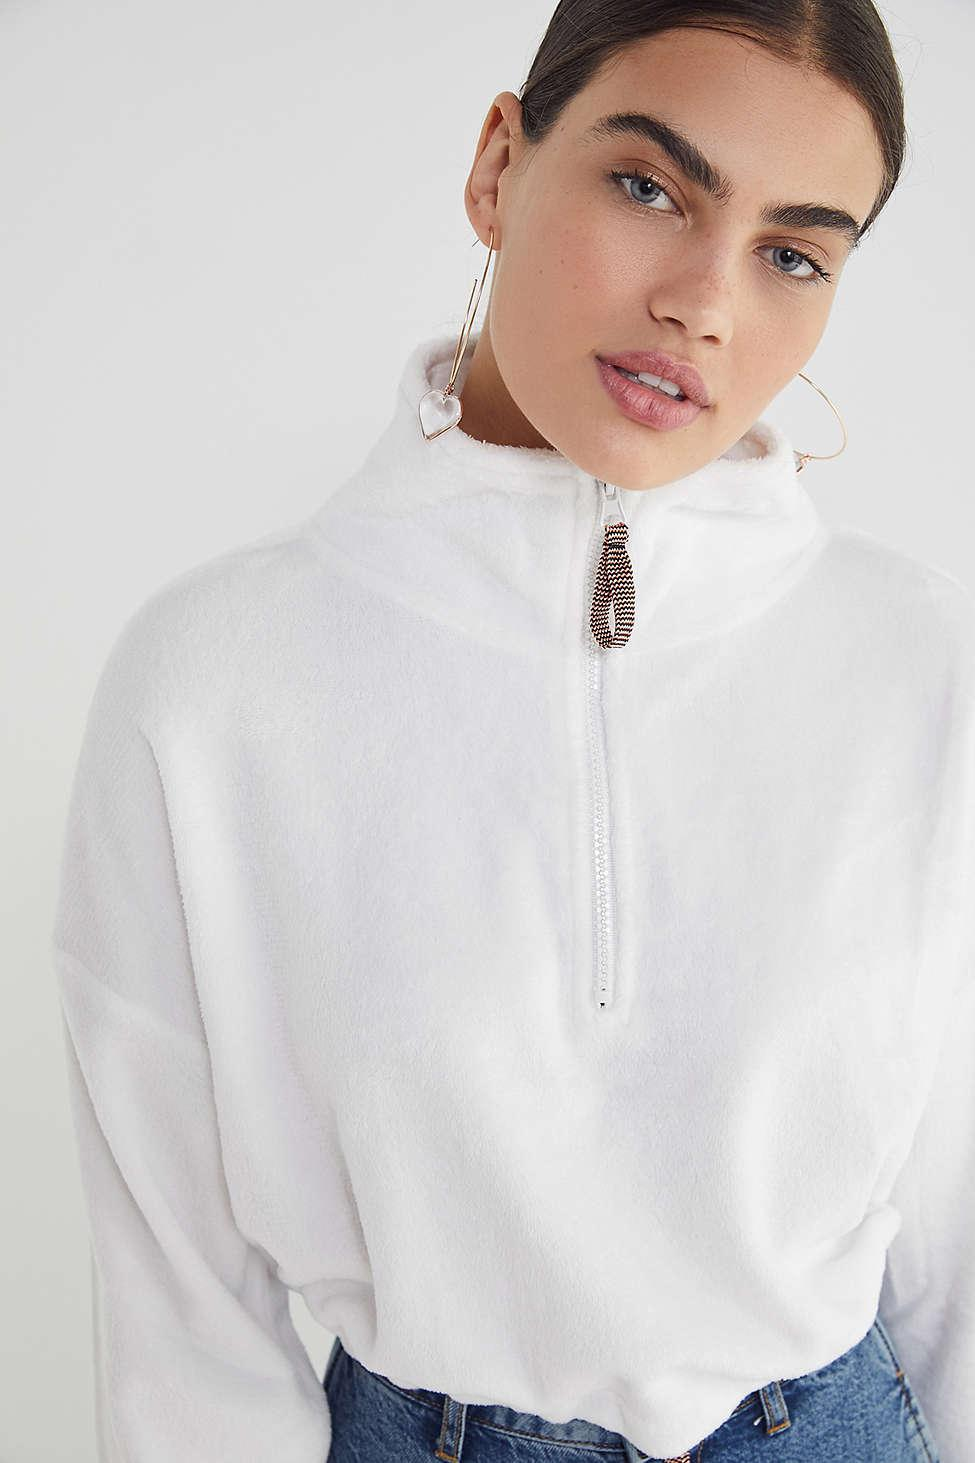 8a6317806 Lyst - Urban Outfitters Uo Angela Fleece Pullover Top in White